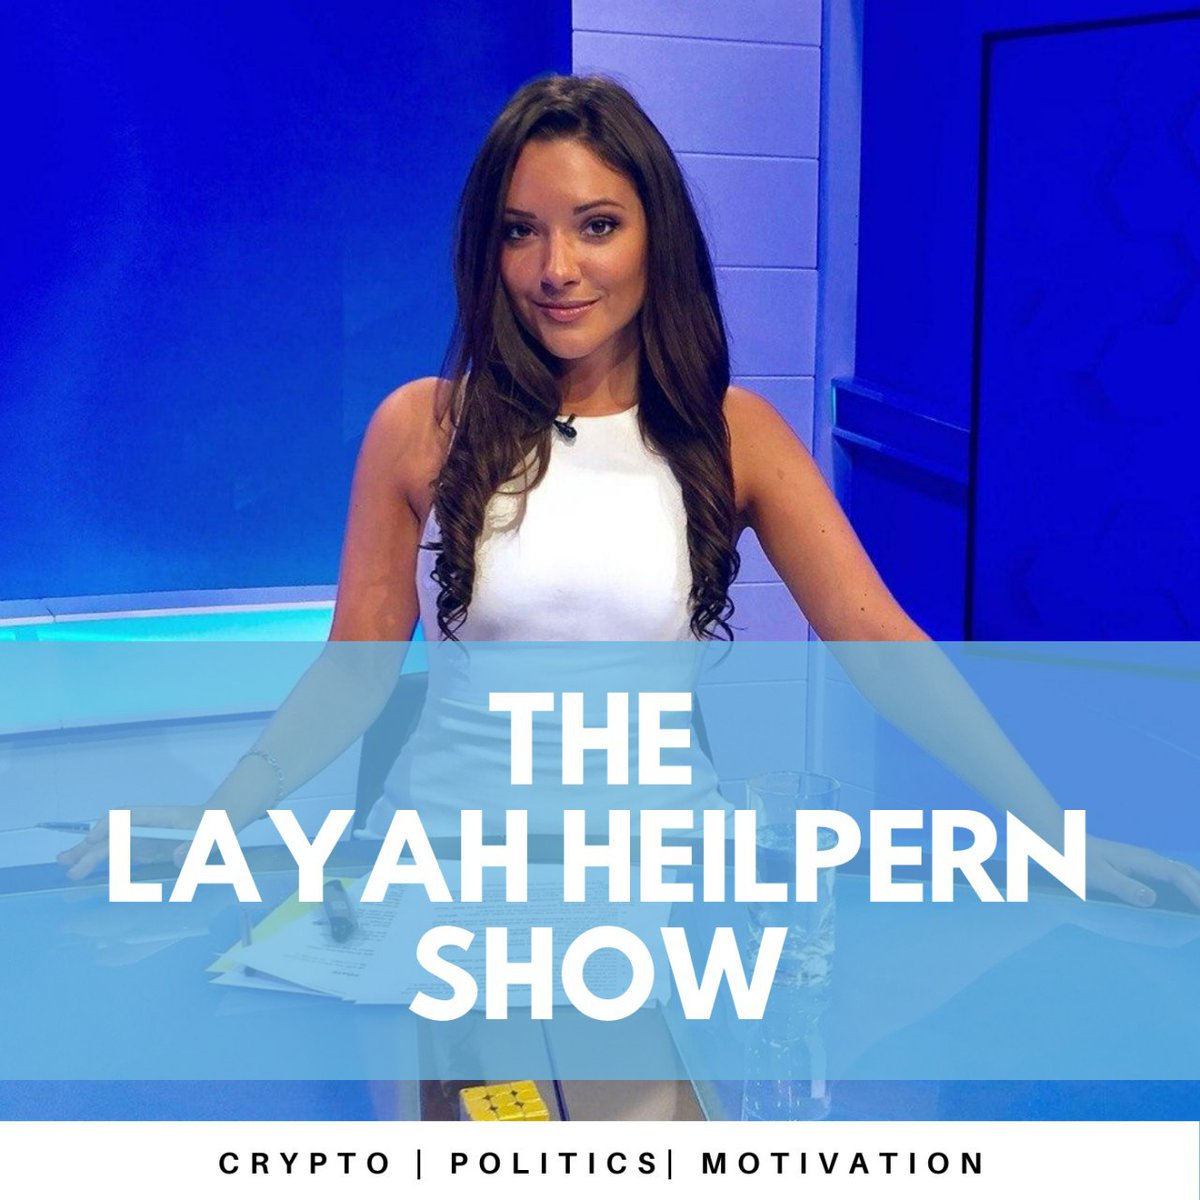 Really pleased to announce @TheRealBlockFi is the newest sponsor of The Layah Heilpern Show!   I now hold my crypto on their platform and earn 8.6% interest!   Anyone who signs up using my link will get $25 dollars: https://t.co/DluD75JARS https://t.co/ZnEwhvlkQ6